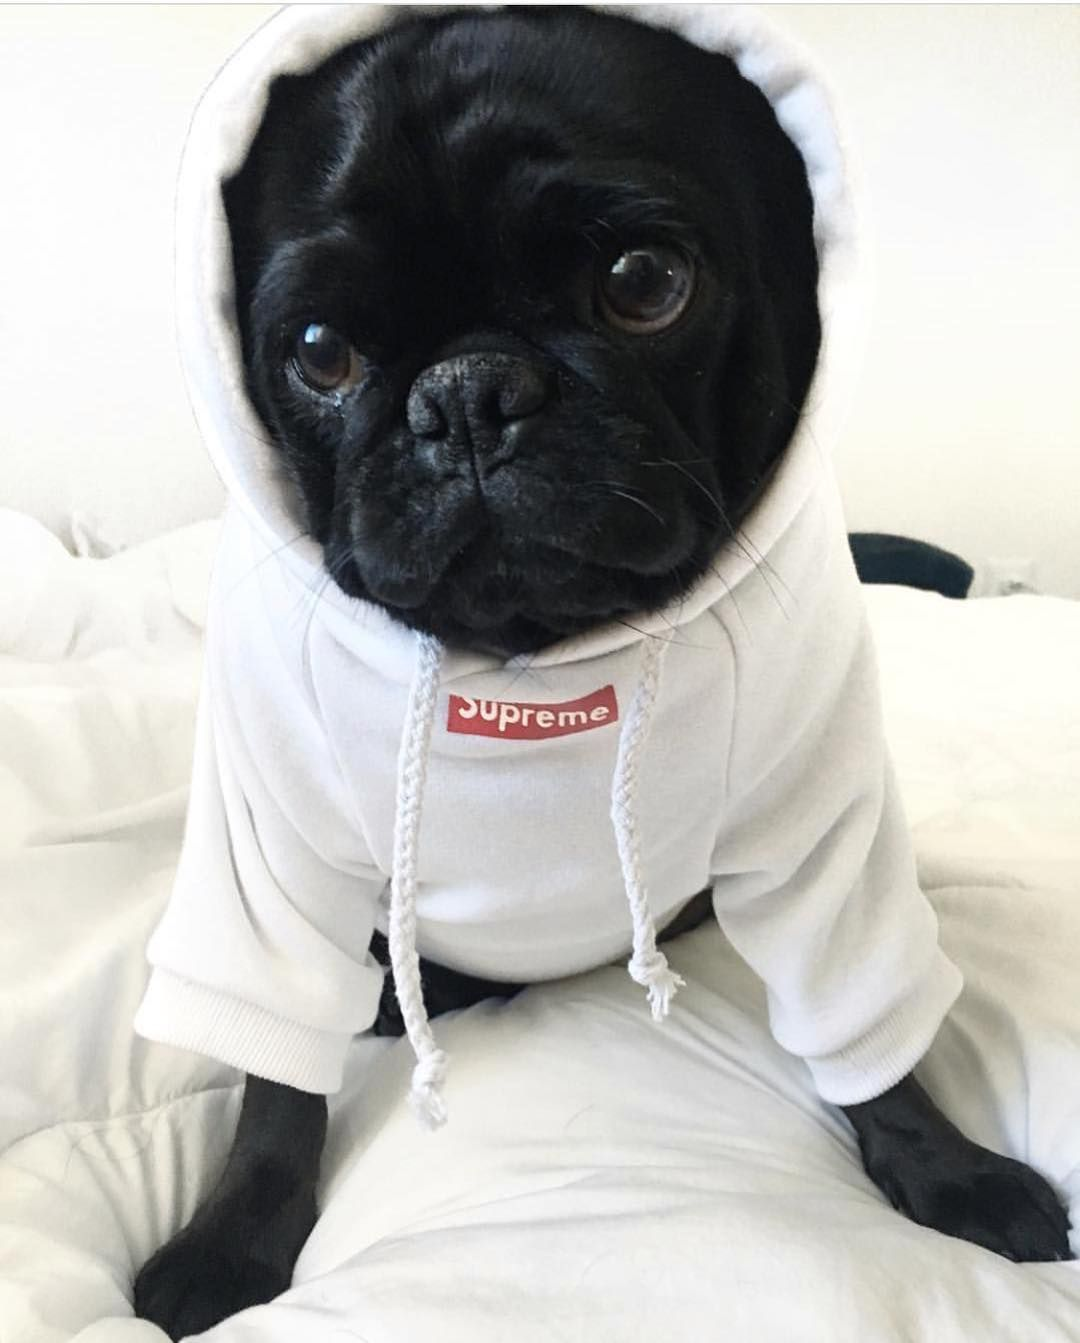 0b2270d5d Just living the pug life Photo by @mdmathepug Want to be featured on our  Instagram? Tag your photos with #thepugdiary for your chance to be featured.